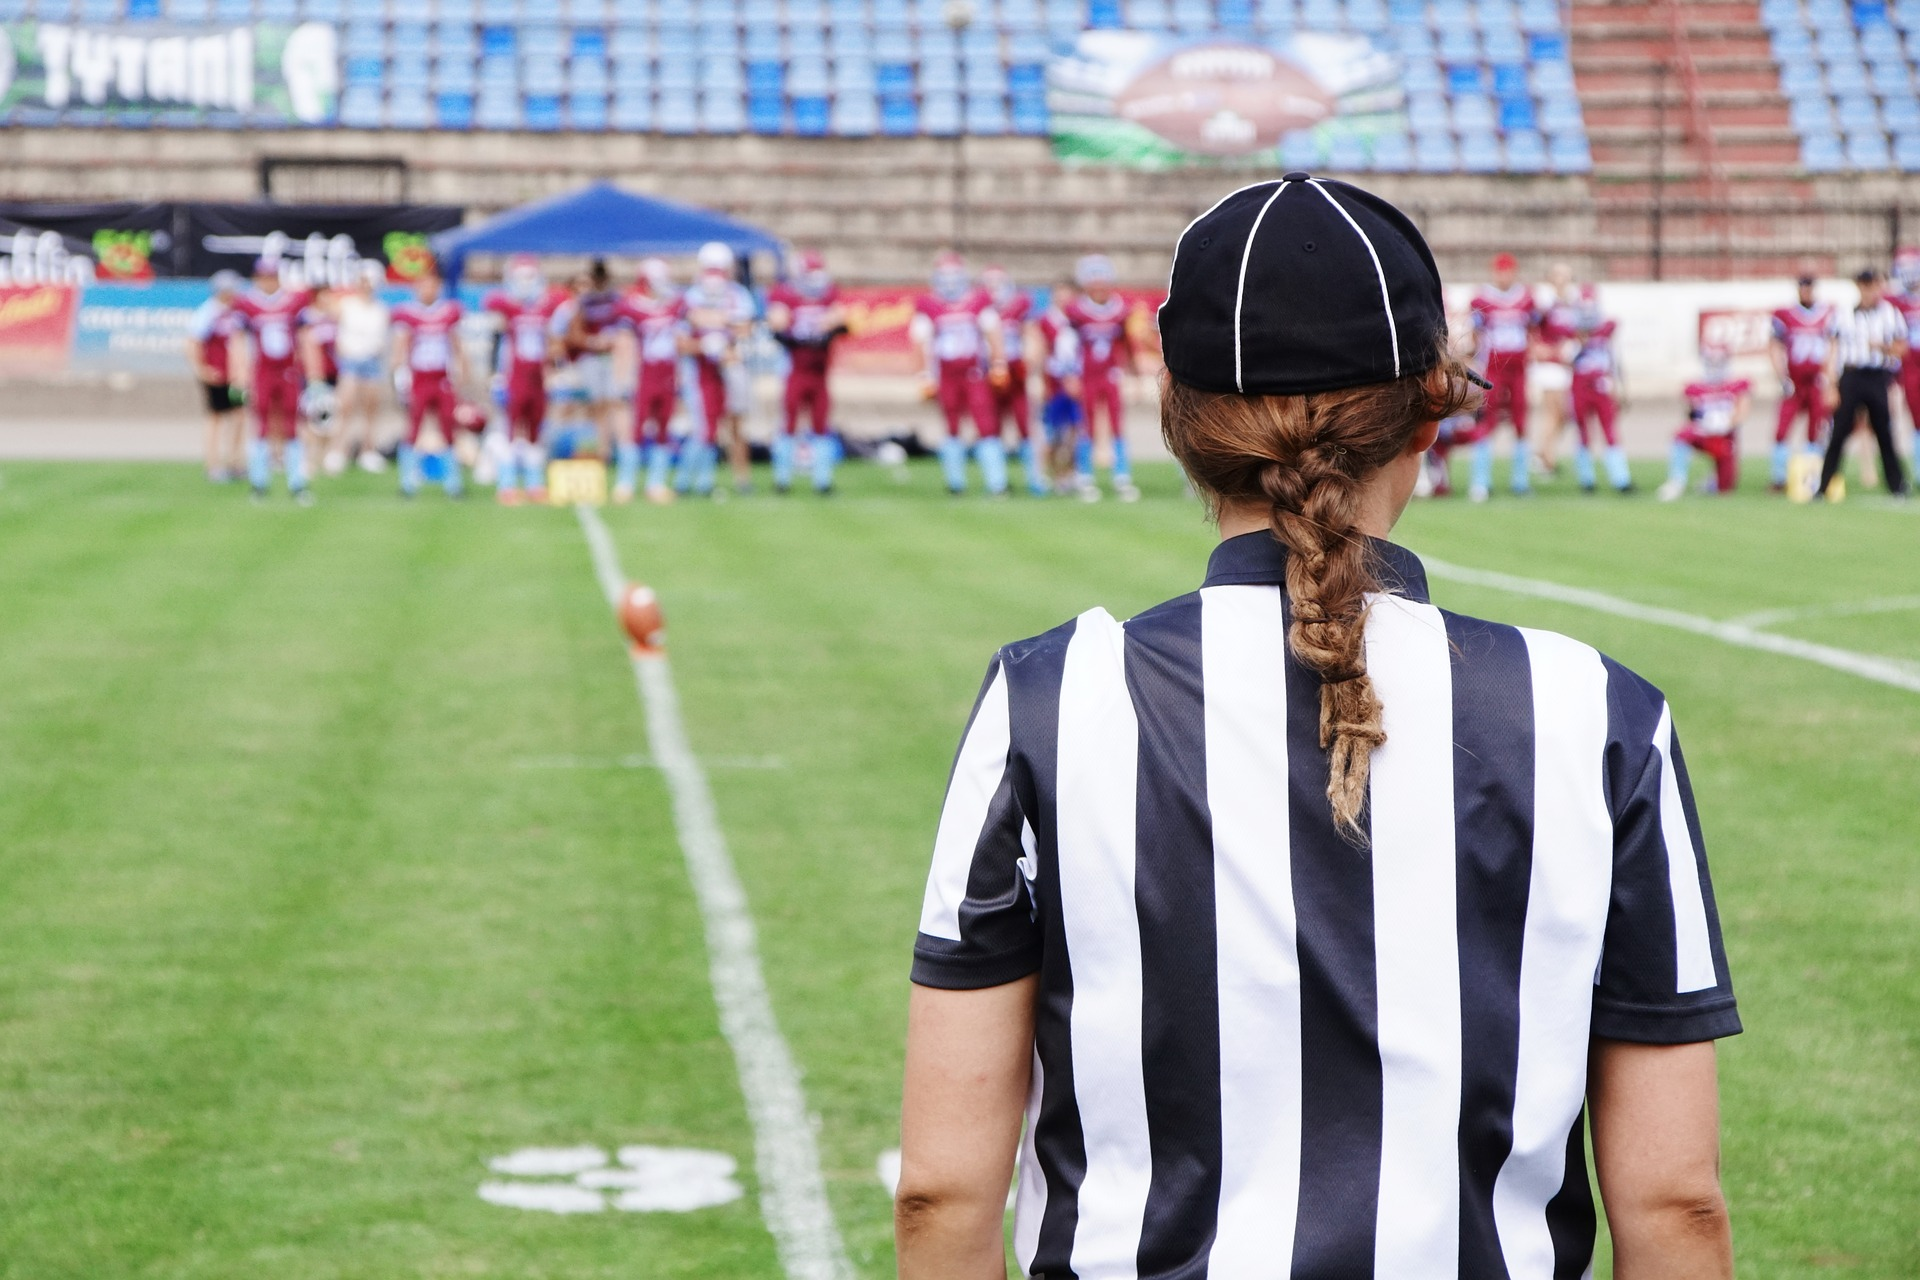 A coach stands on the football field observing her team.